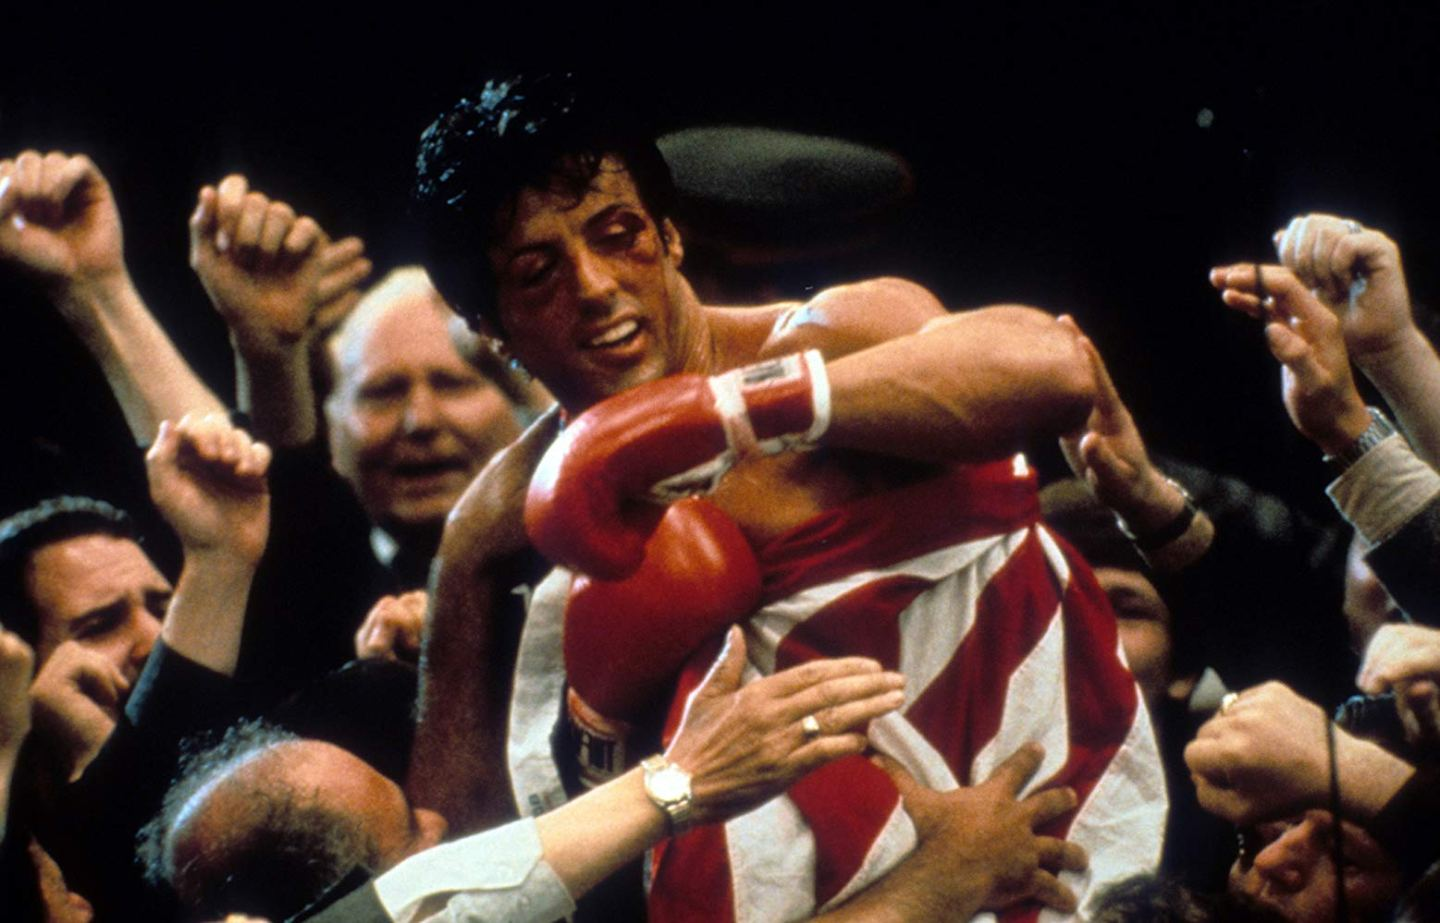 Rocky IV featured